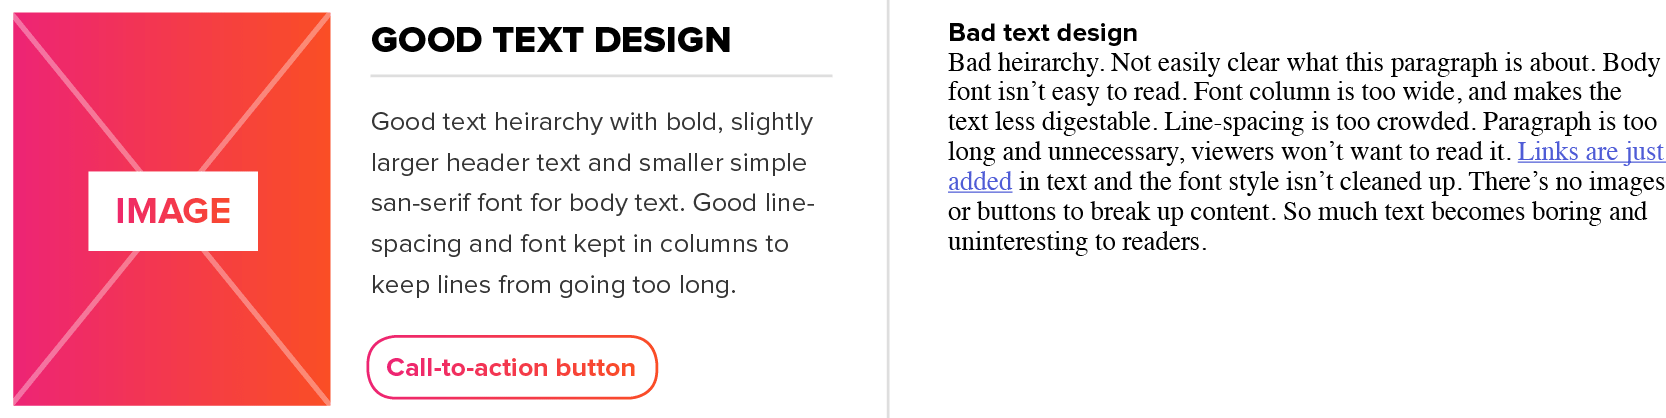 example of good tex design and bad text design